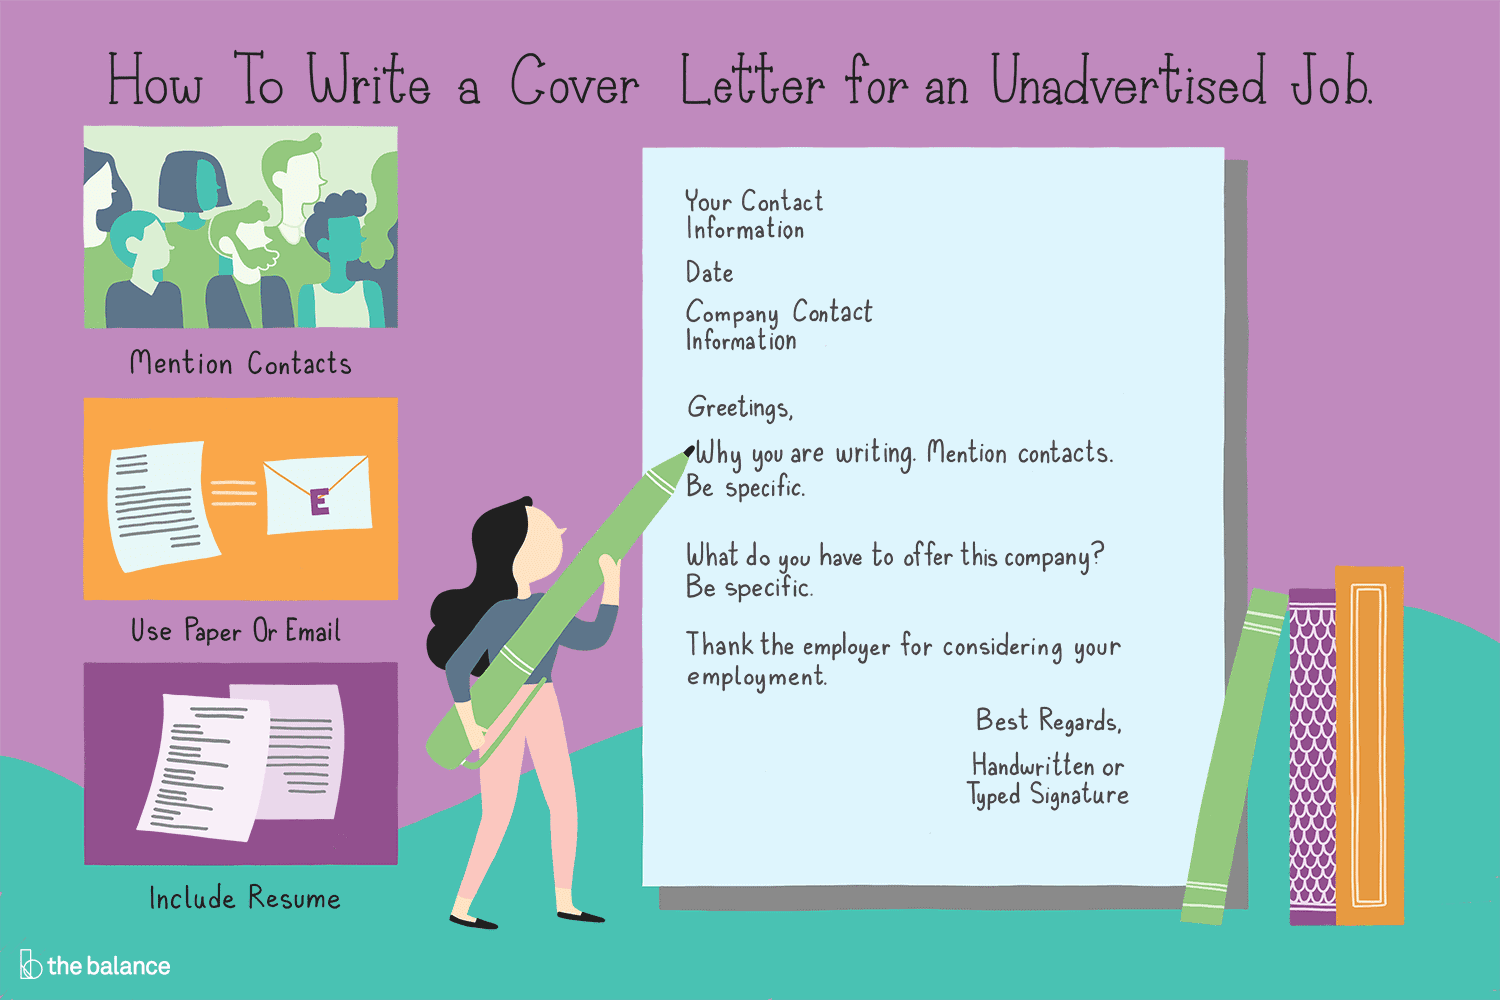 how to write a cover letter for an unadvertised job